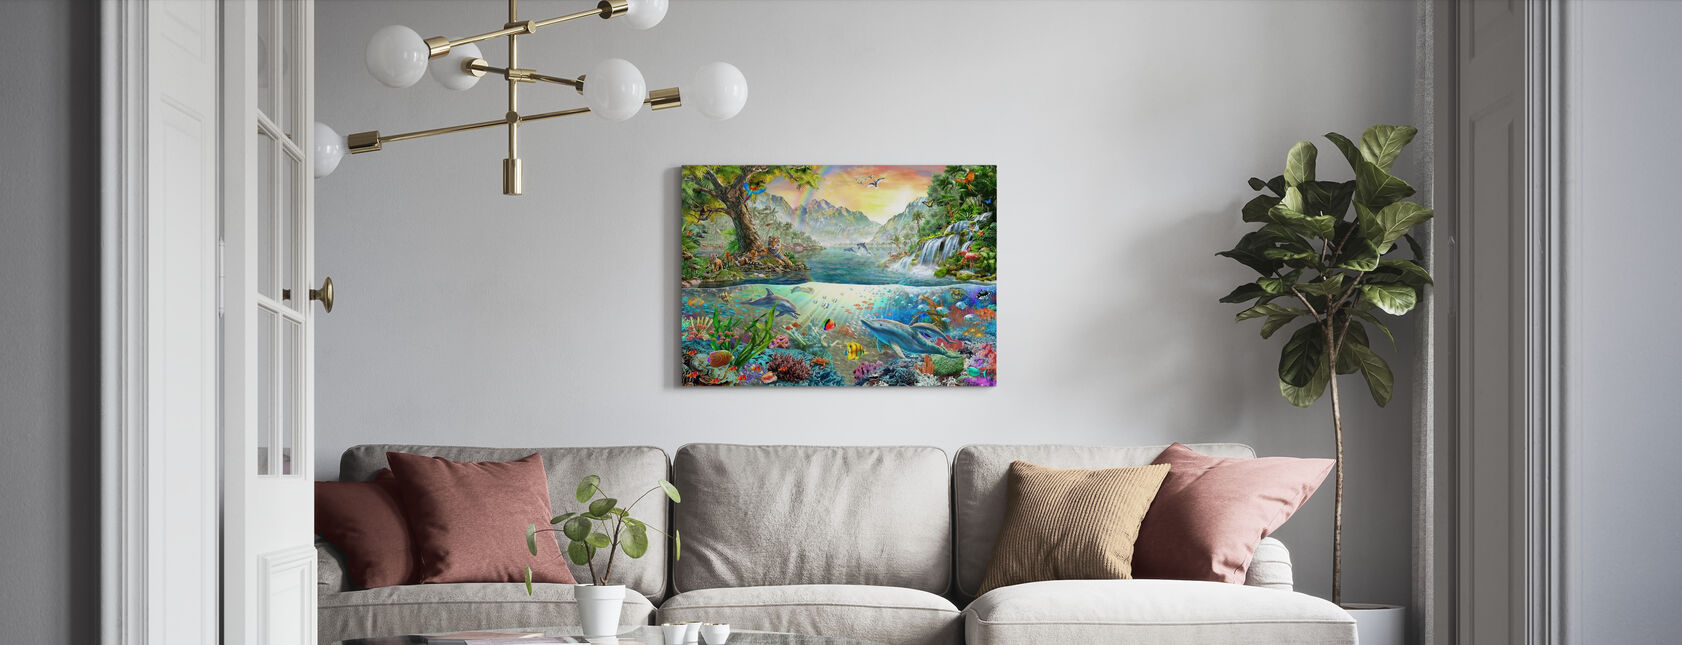 Land and Water Utopia - Canvas print - Living Room